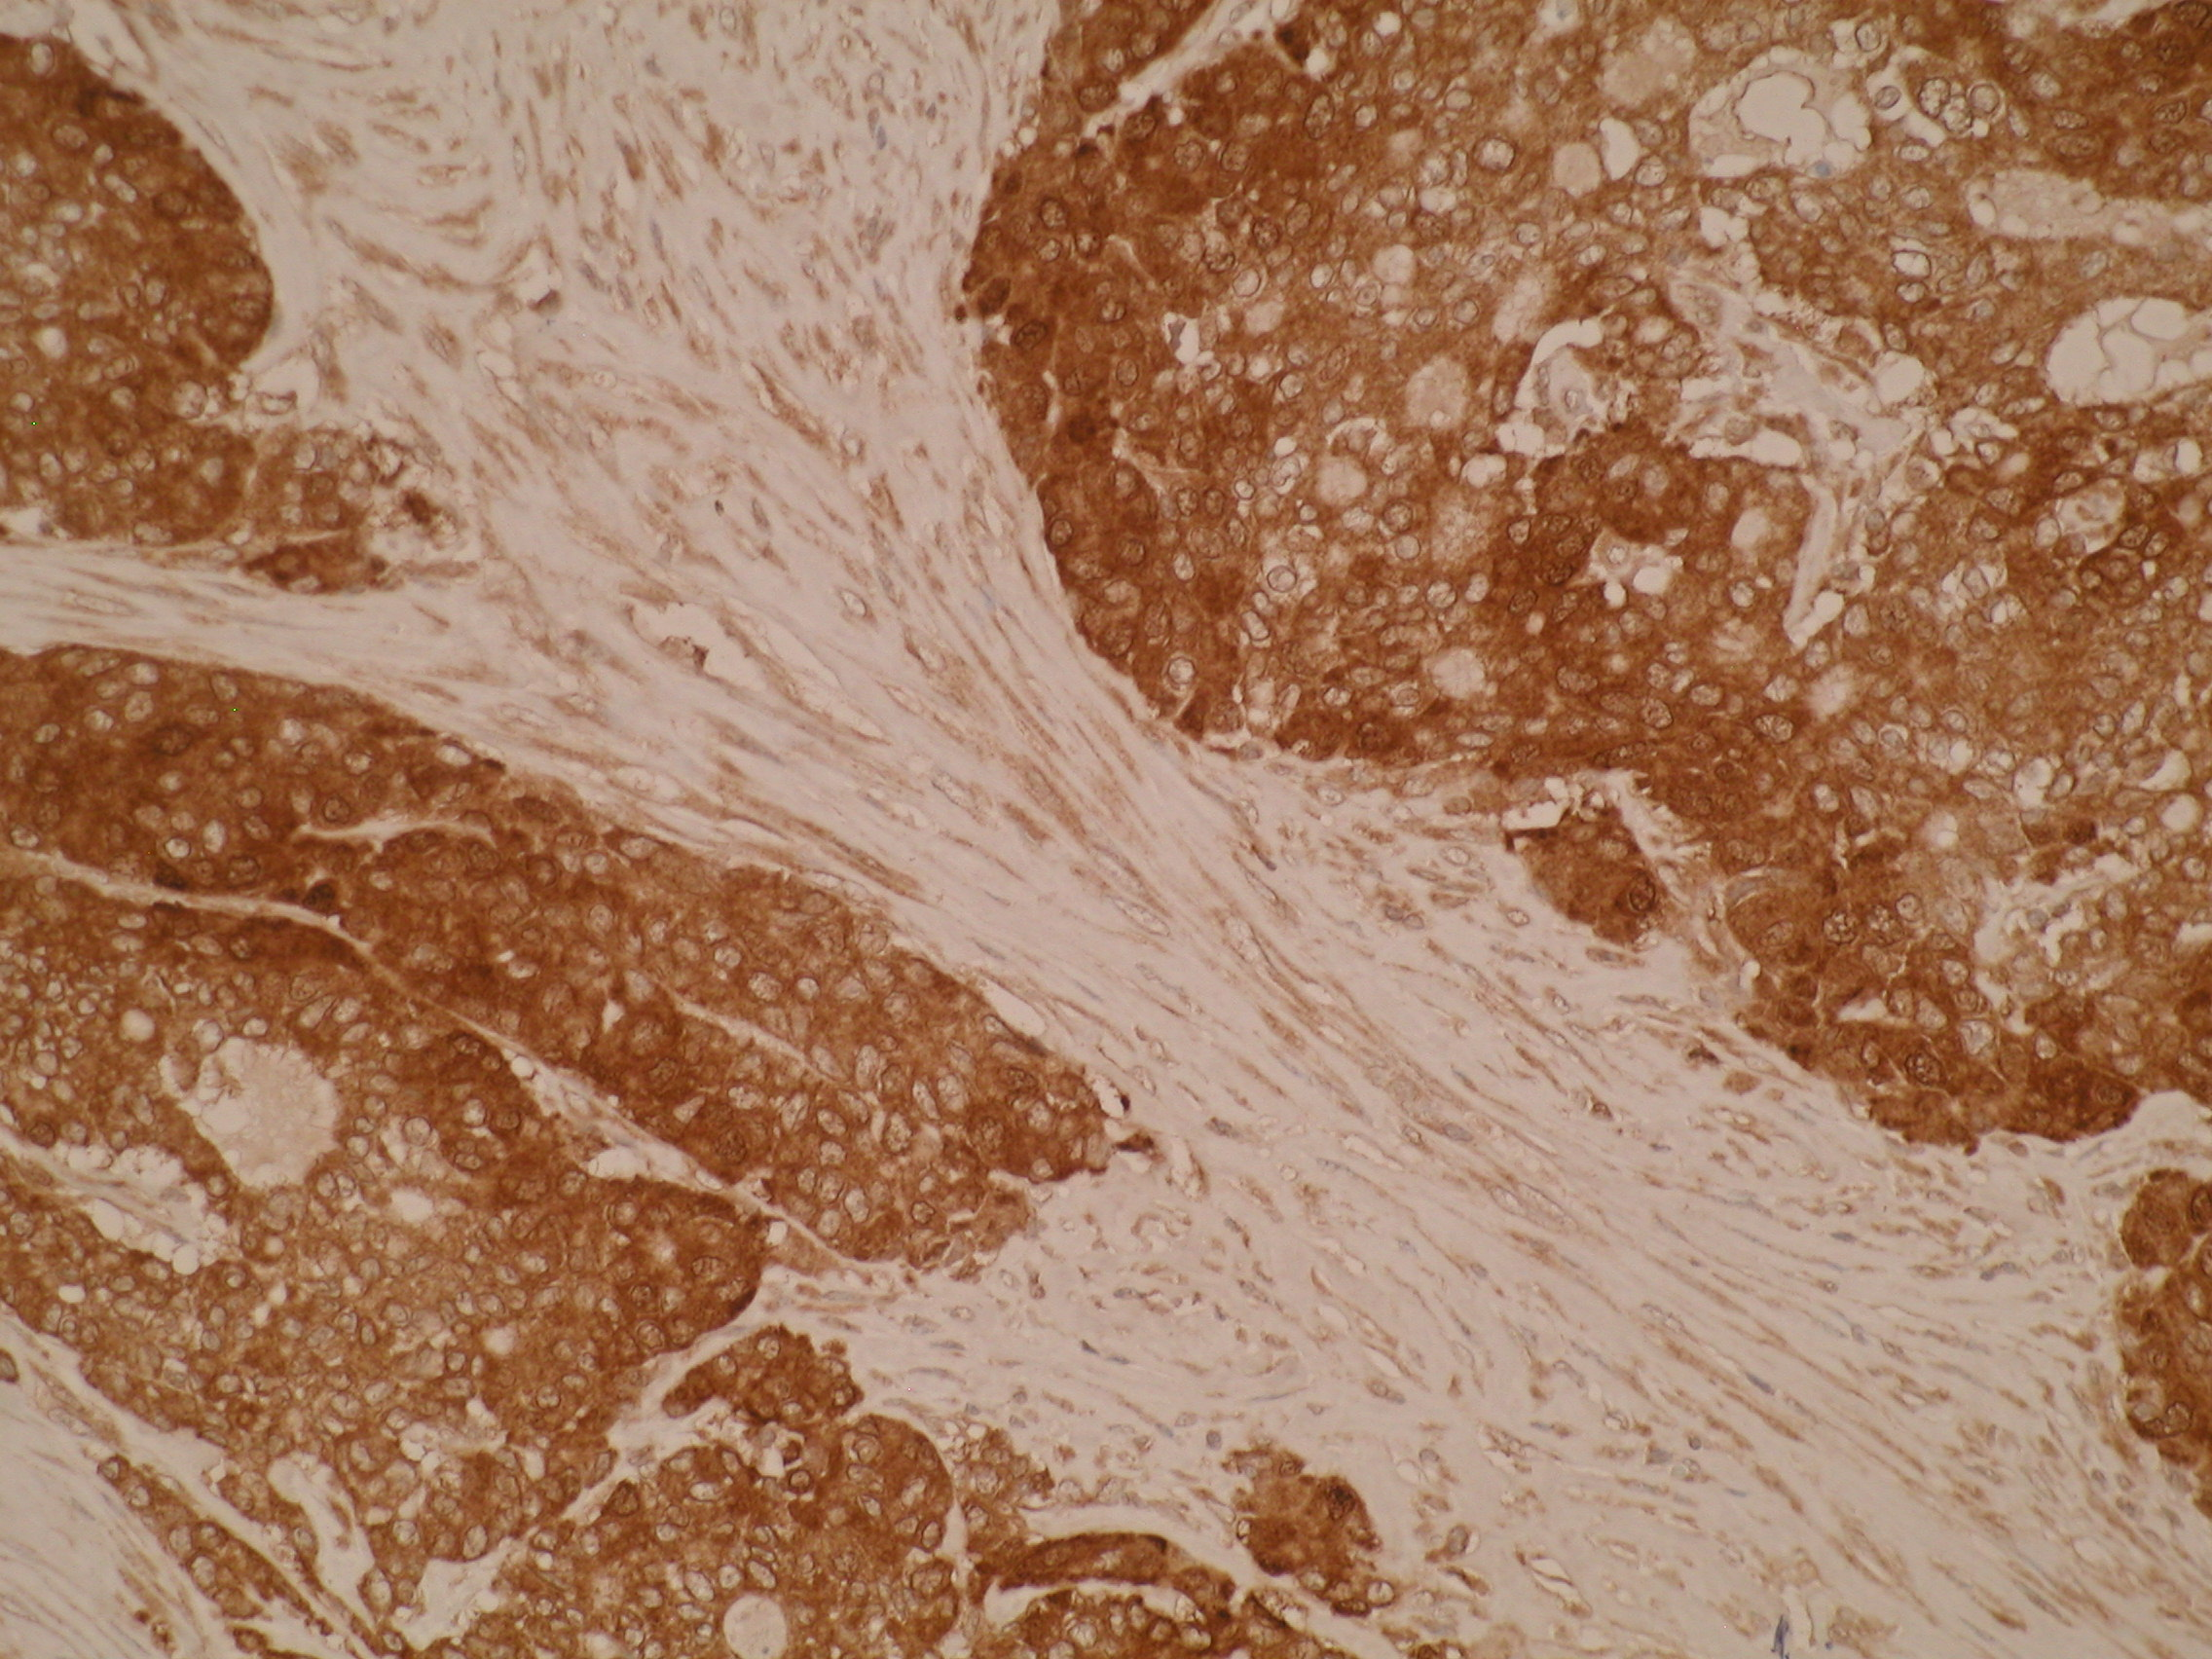 Immunohistochemistry of formalin-fixed, paraffin-embedded human colorectal cancer tissue using anti-GCSP [Z44P4C6*F5] showing strong cytoplasmic staining.